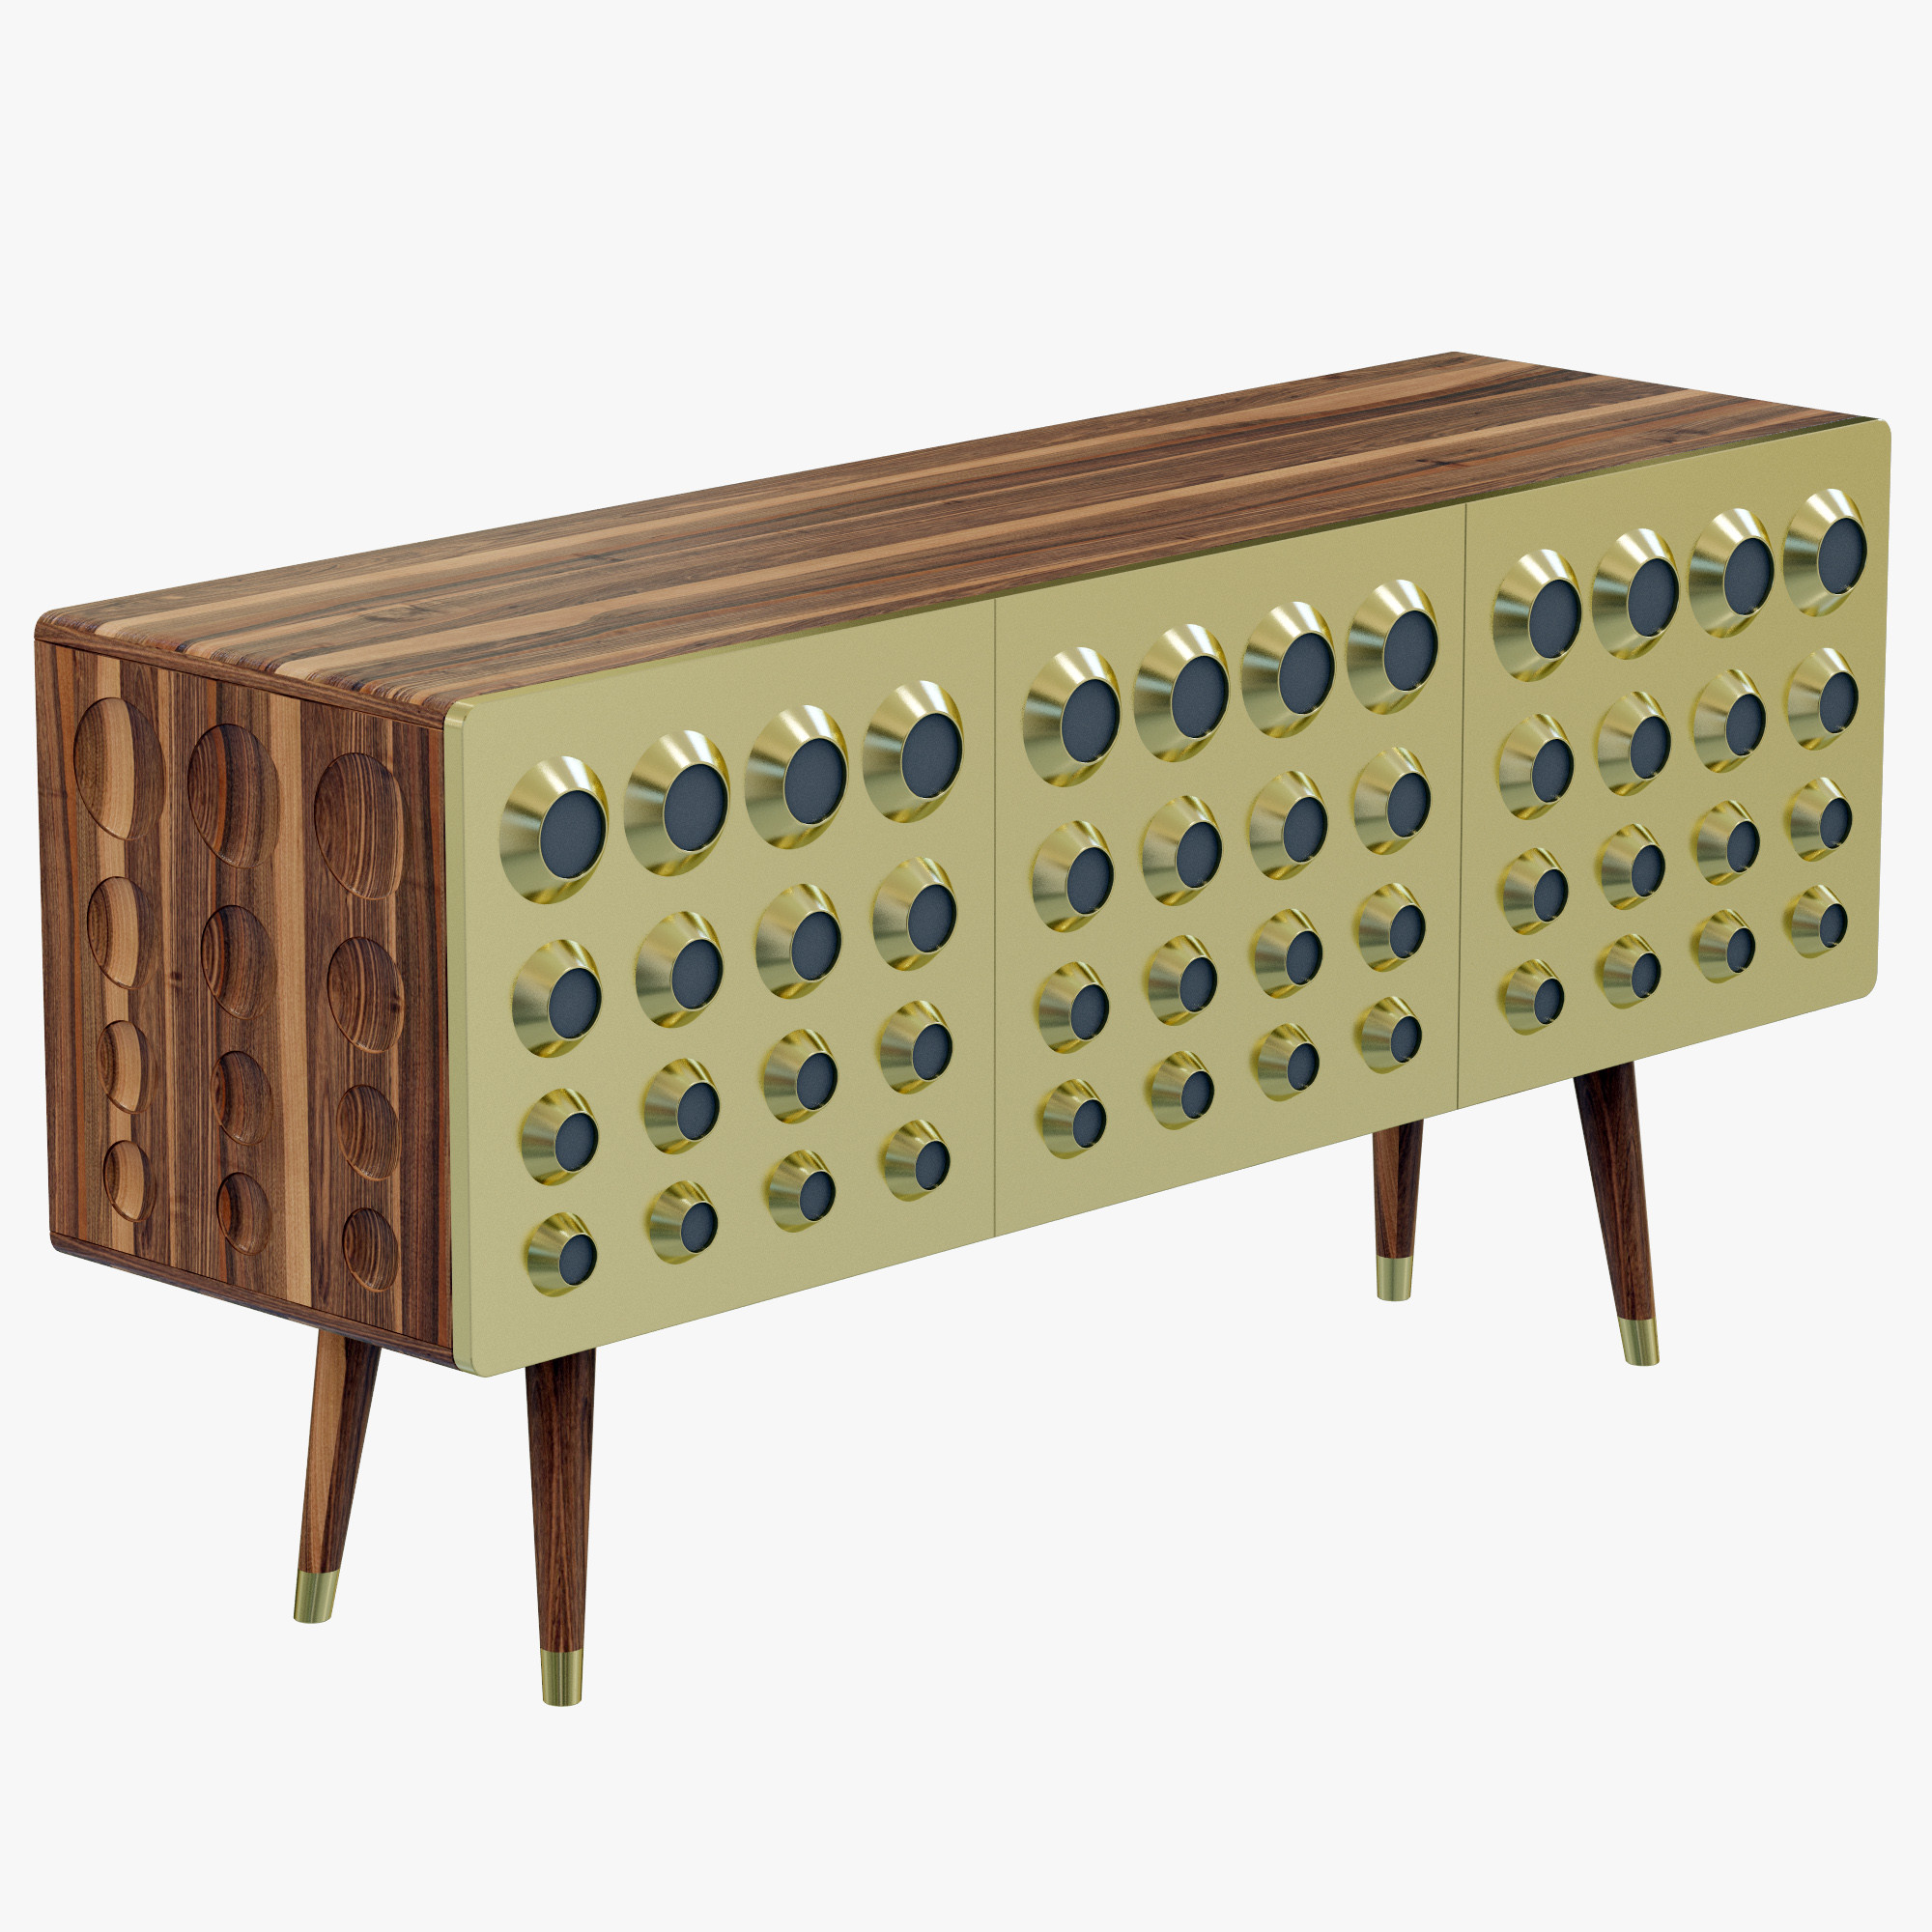 Monocles sideboard by Delightfull (5)  Modern Buffets for a dining room design delightfullMONOCLESSIDEBOARD2